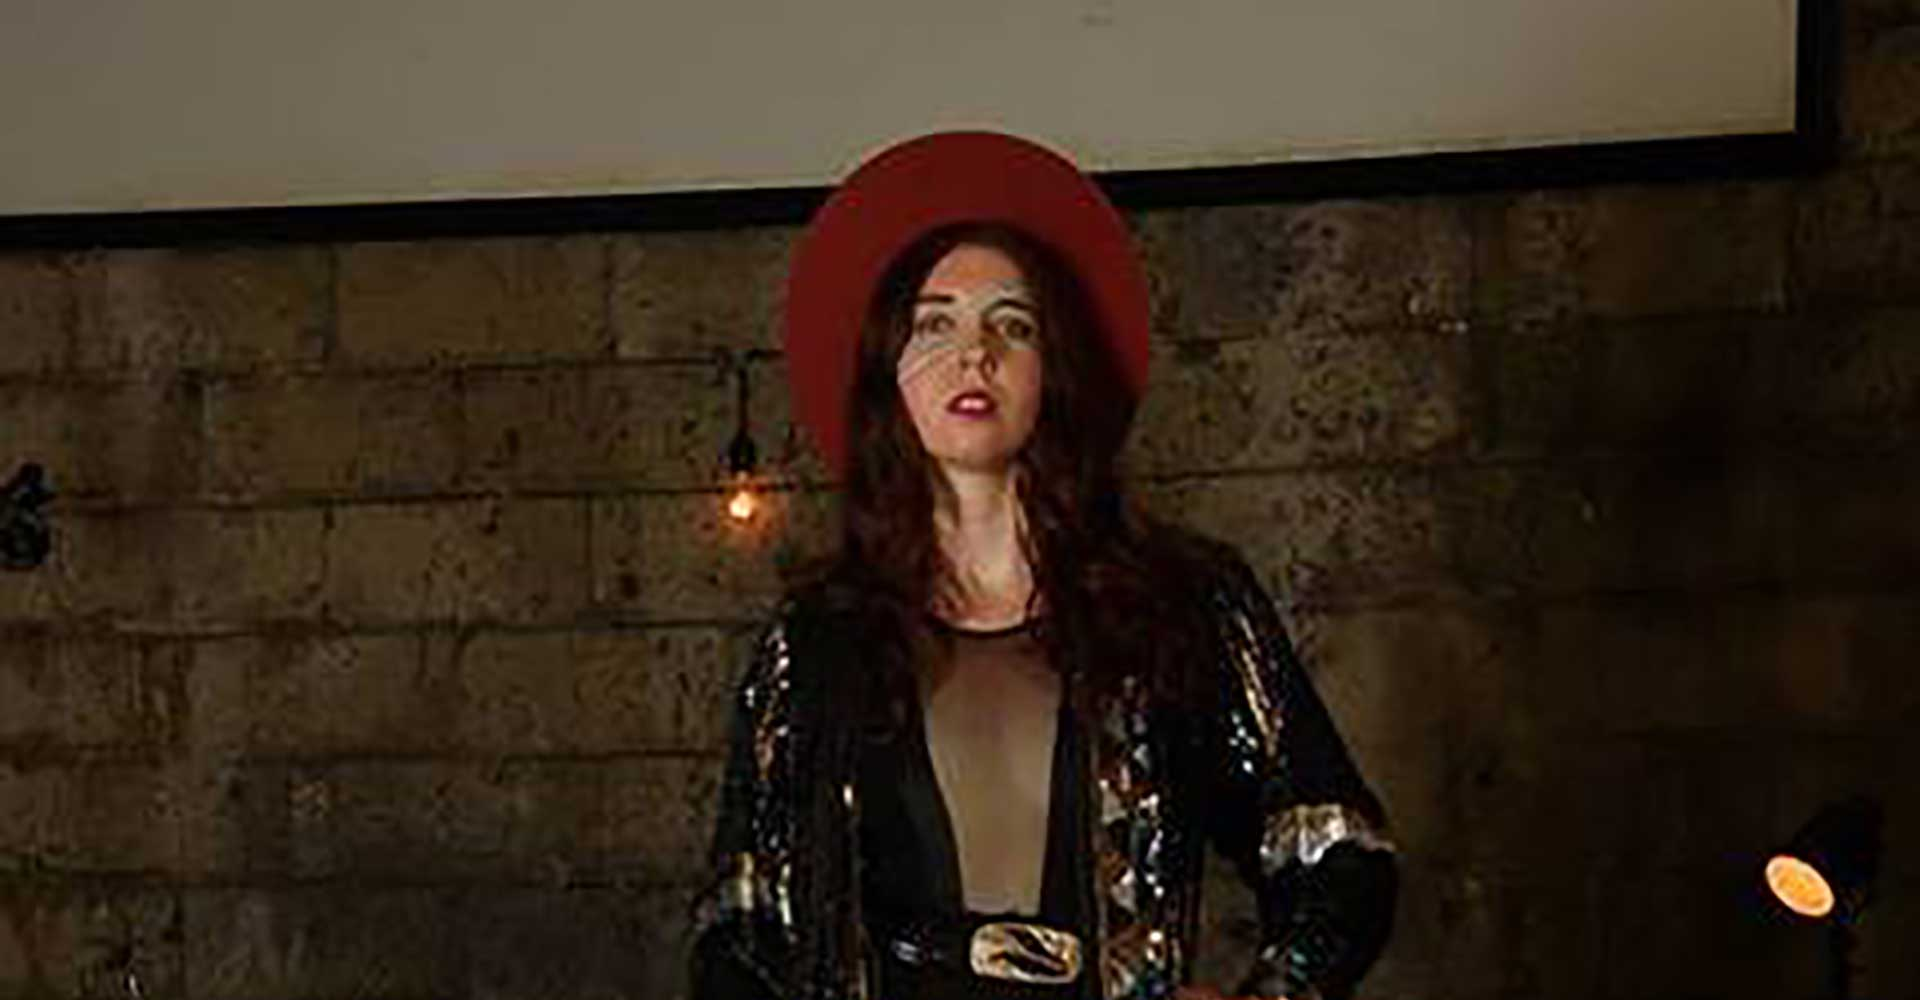 NYS Music: Megg Farrell & Friends to Release 'Blues in the Womb'